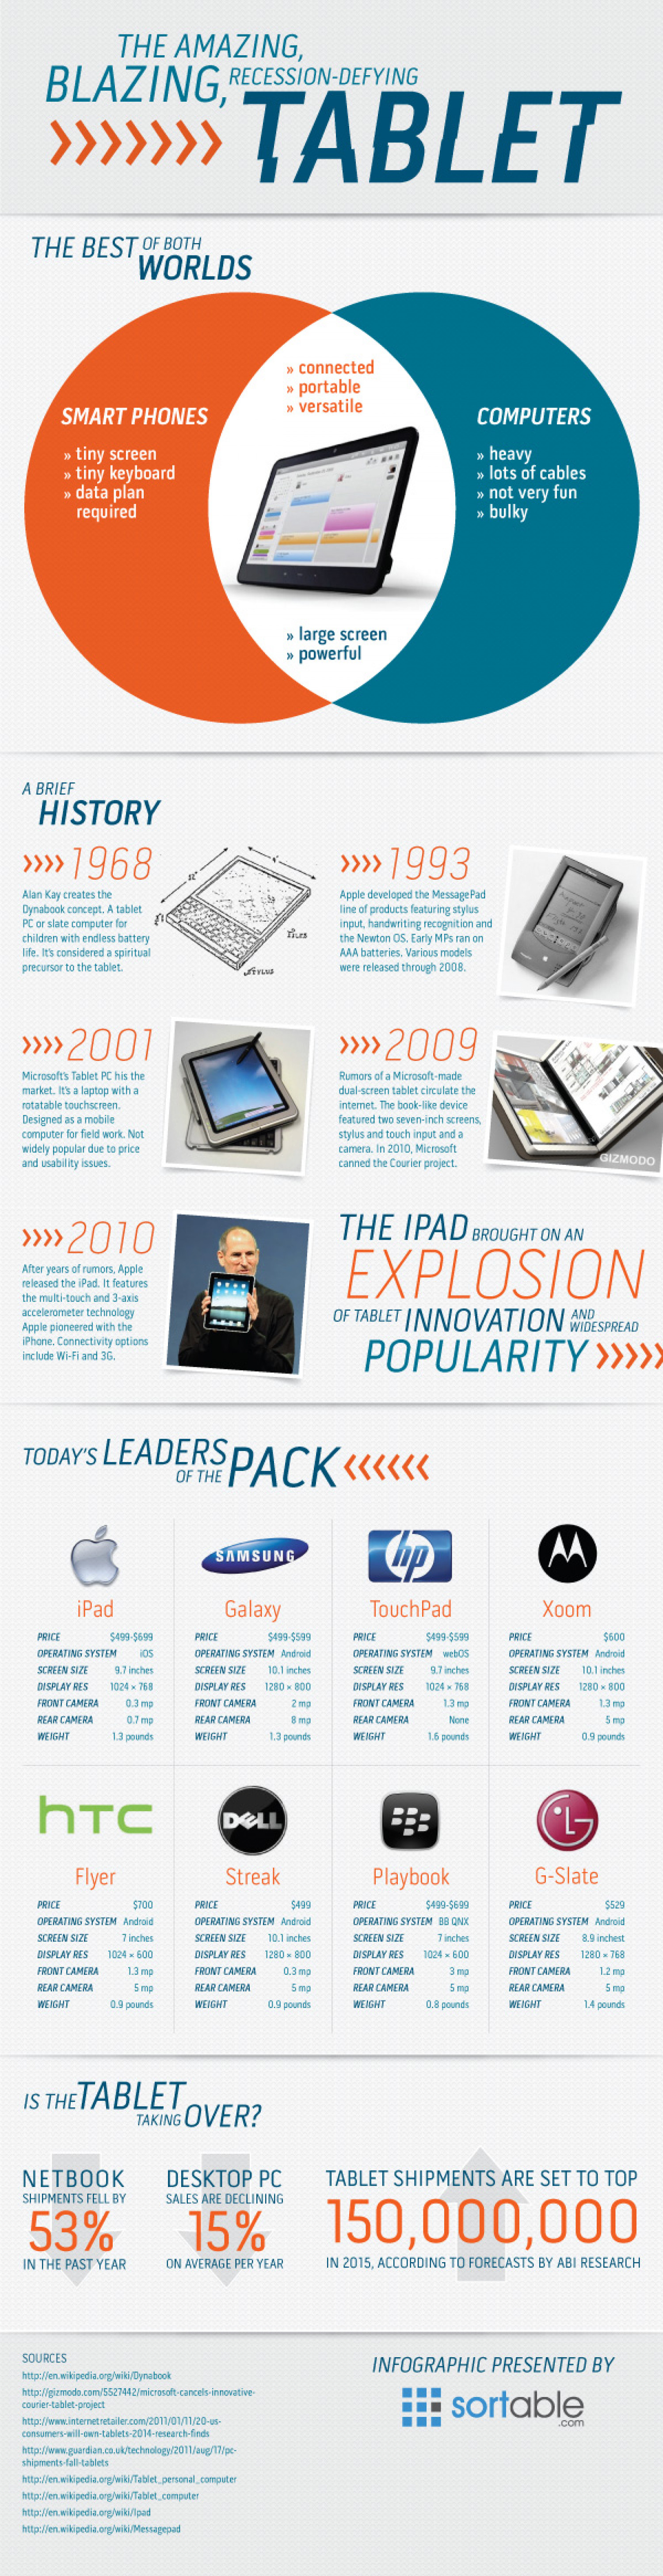 The Amazing Blazing Recession Defying Tablet Infographic